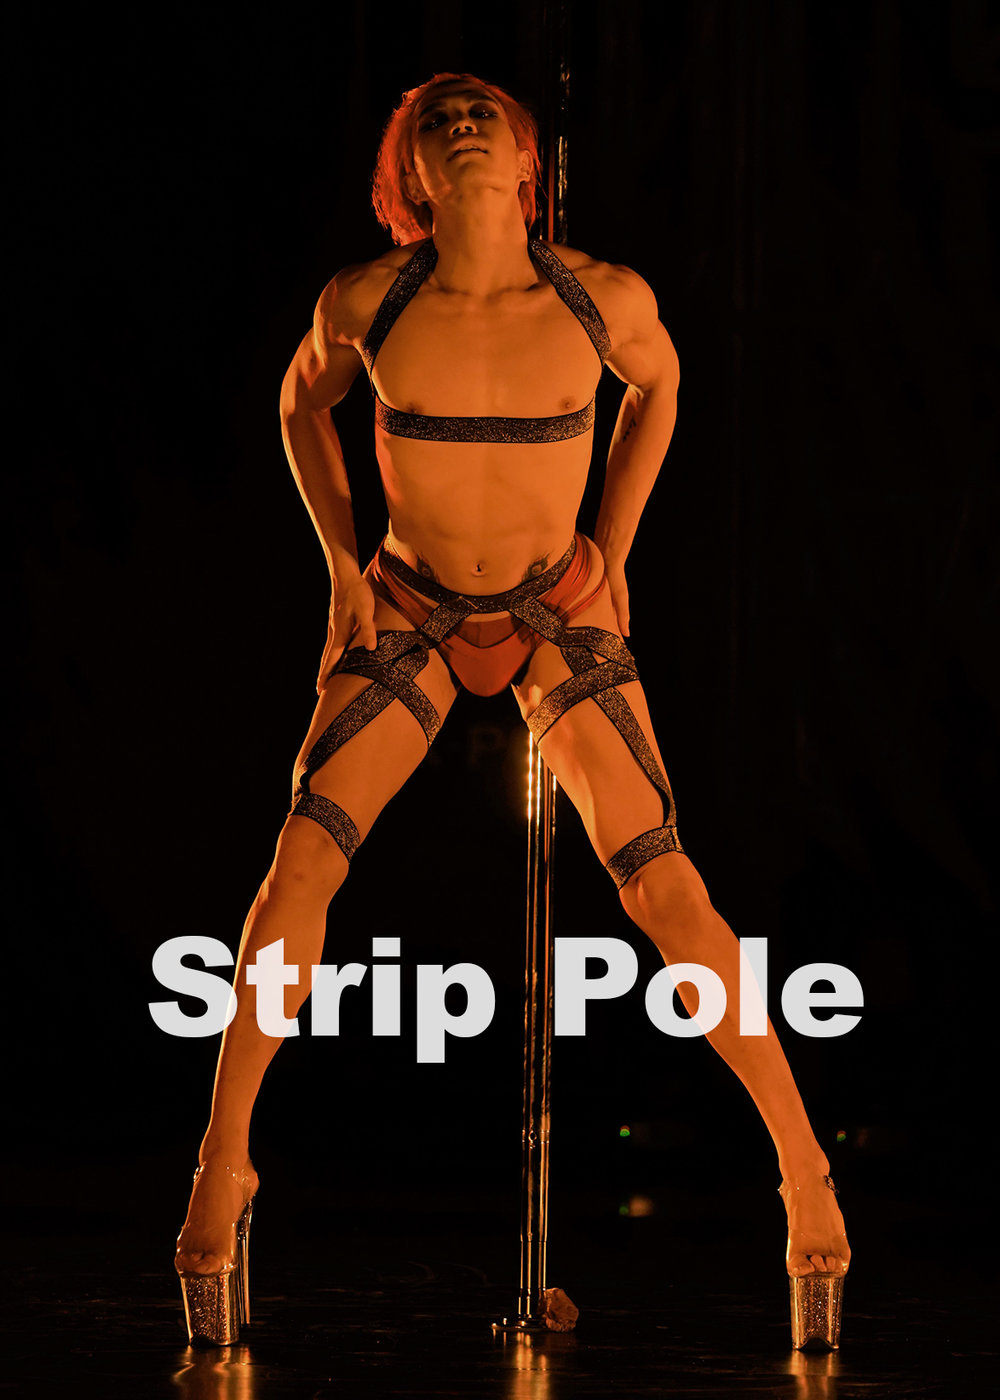 Strip Pole.jpg